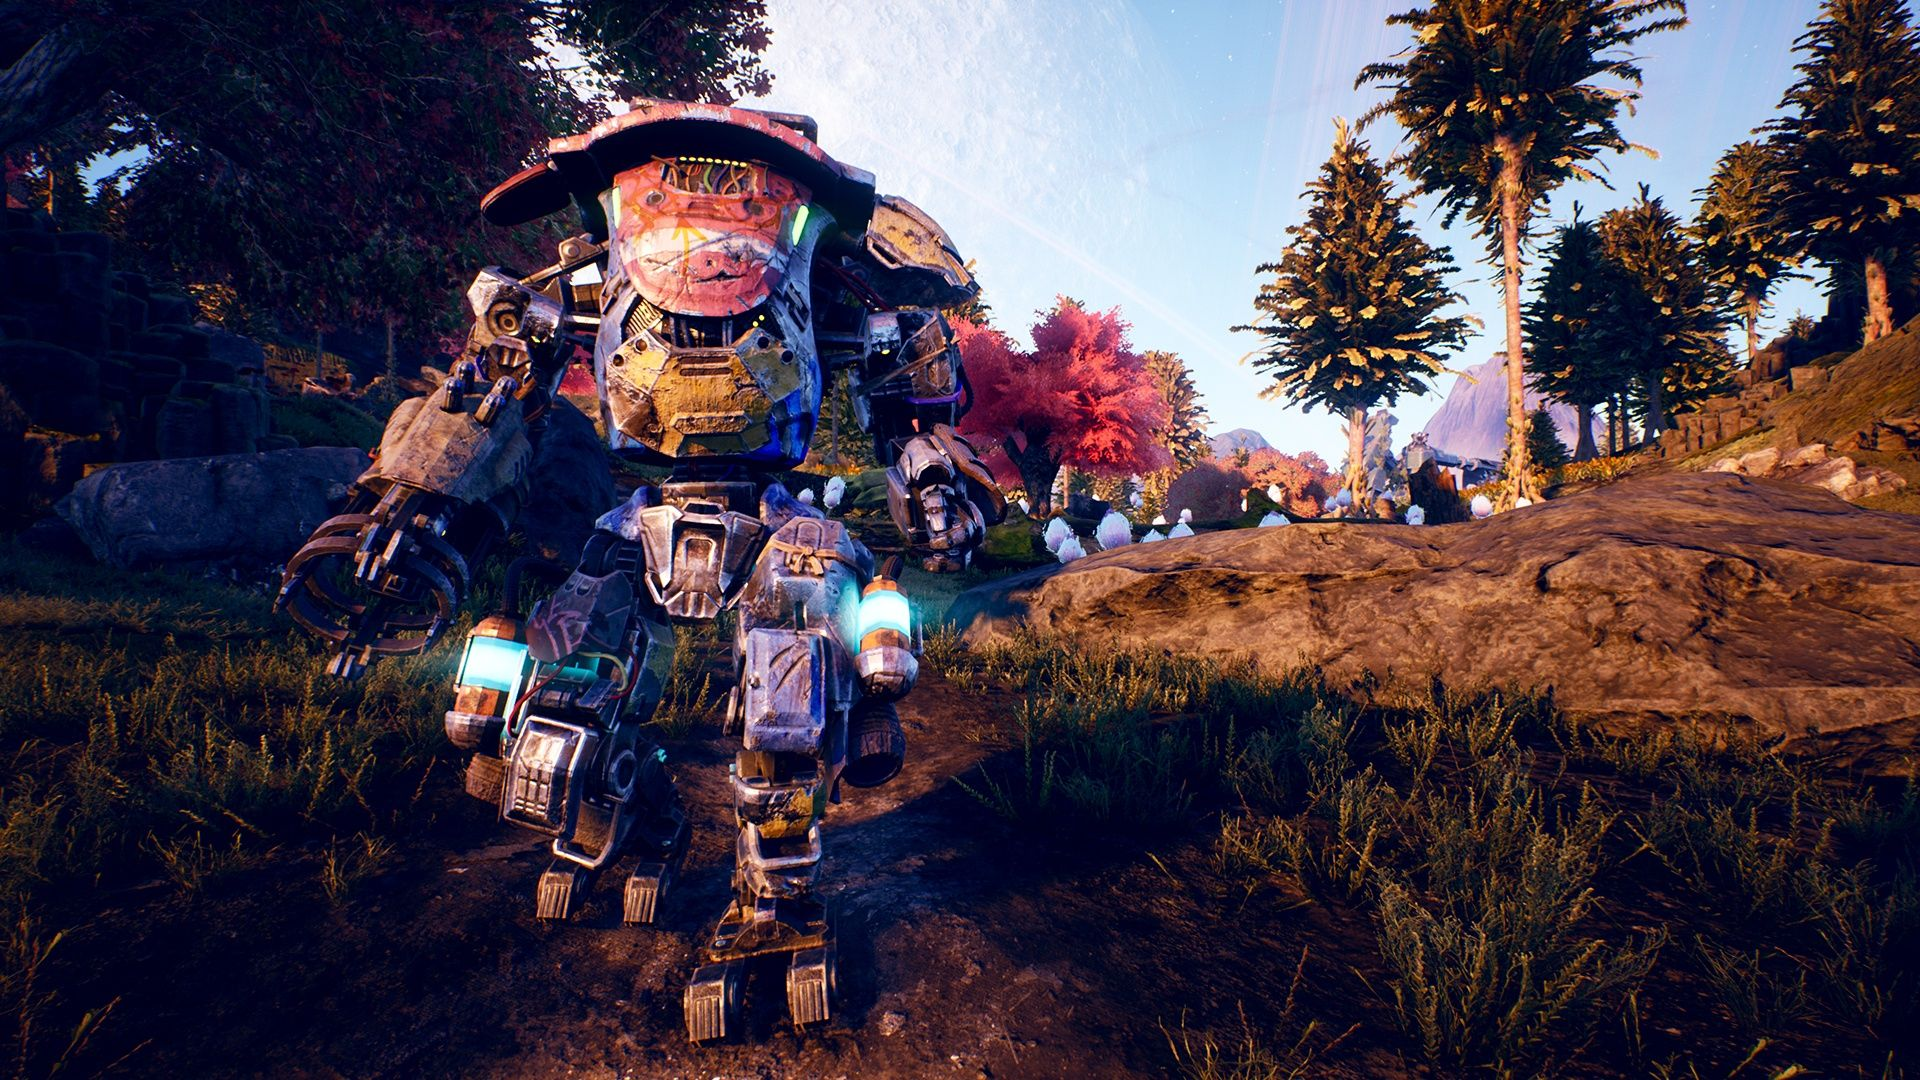 The Outer Worlds From Obsidian